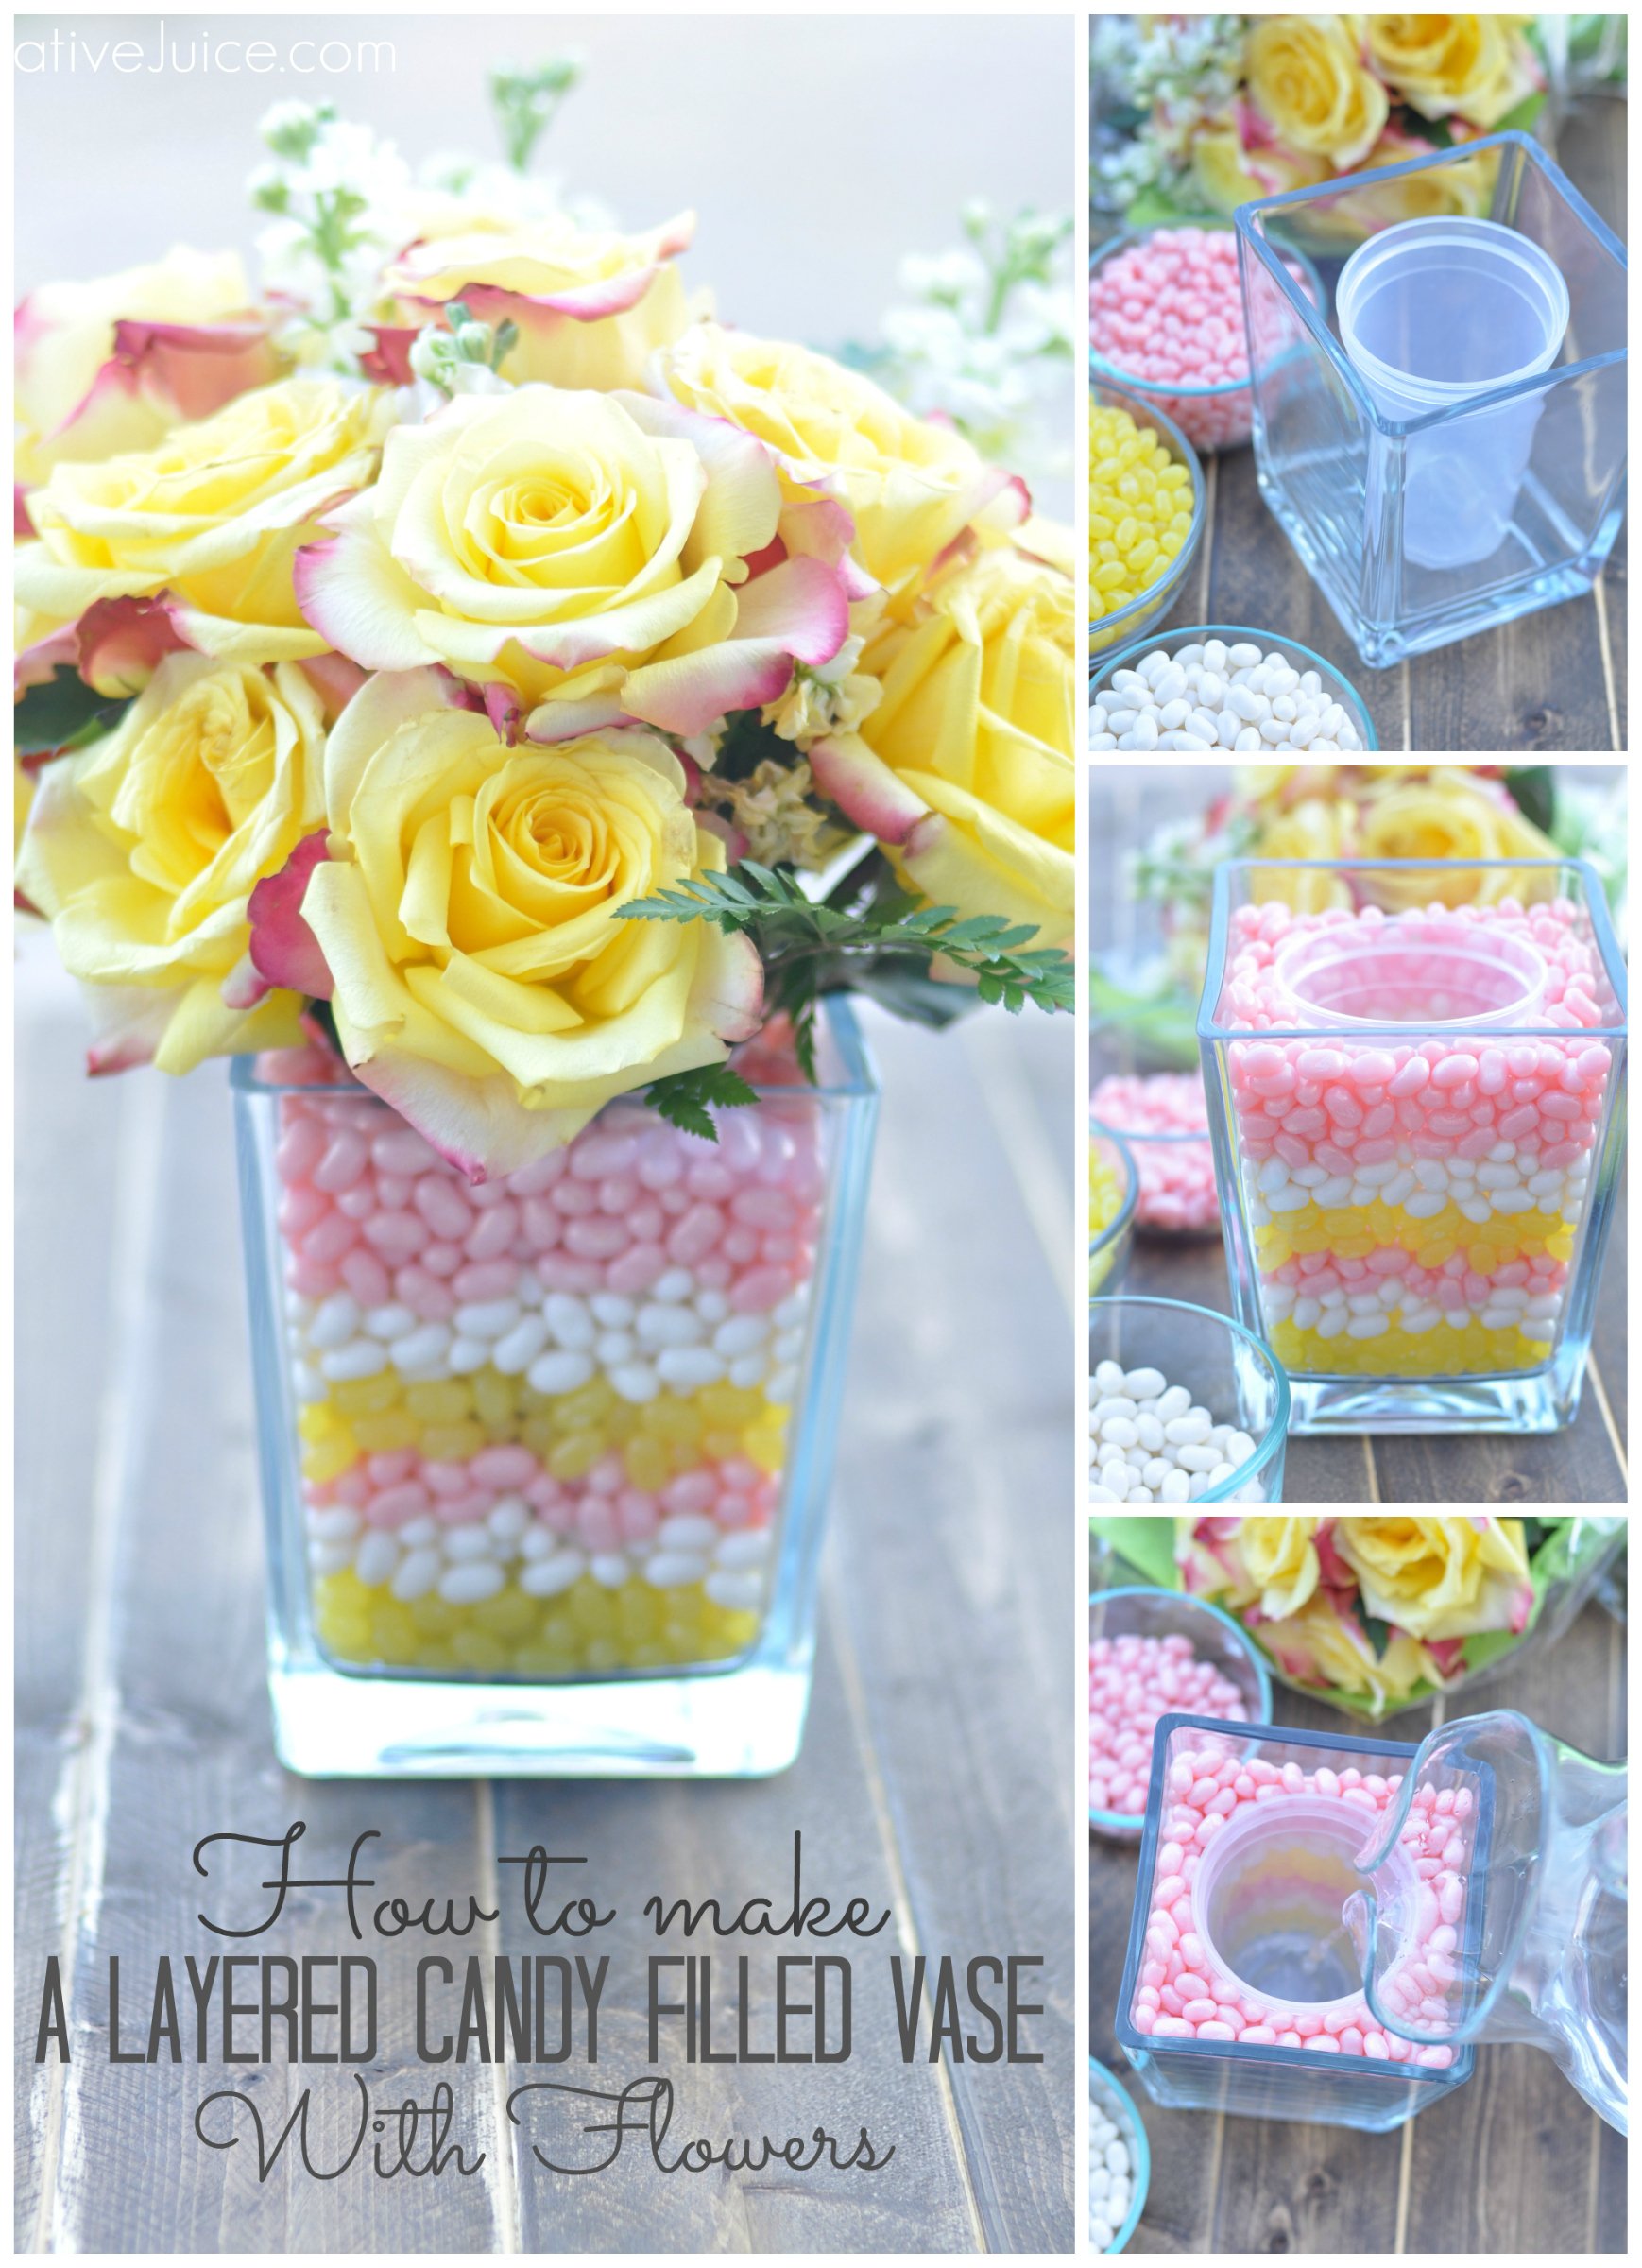 How to make a Layered Candy Filled Vase with Flowers - Creative Juice